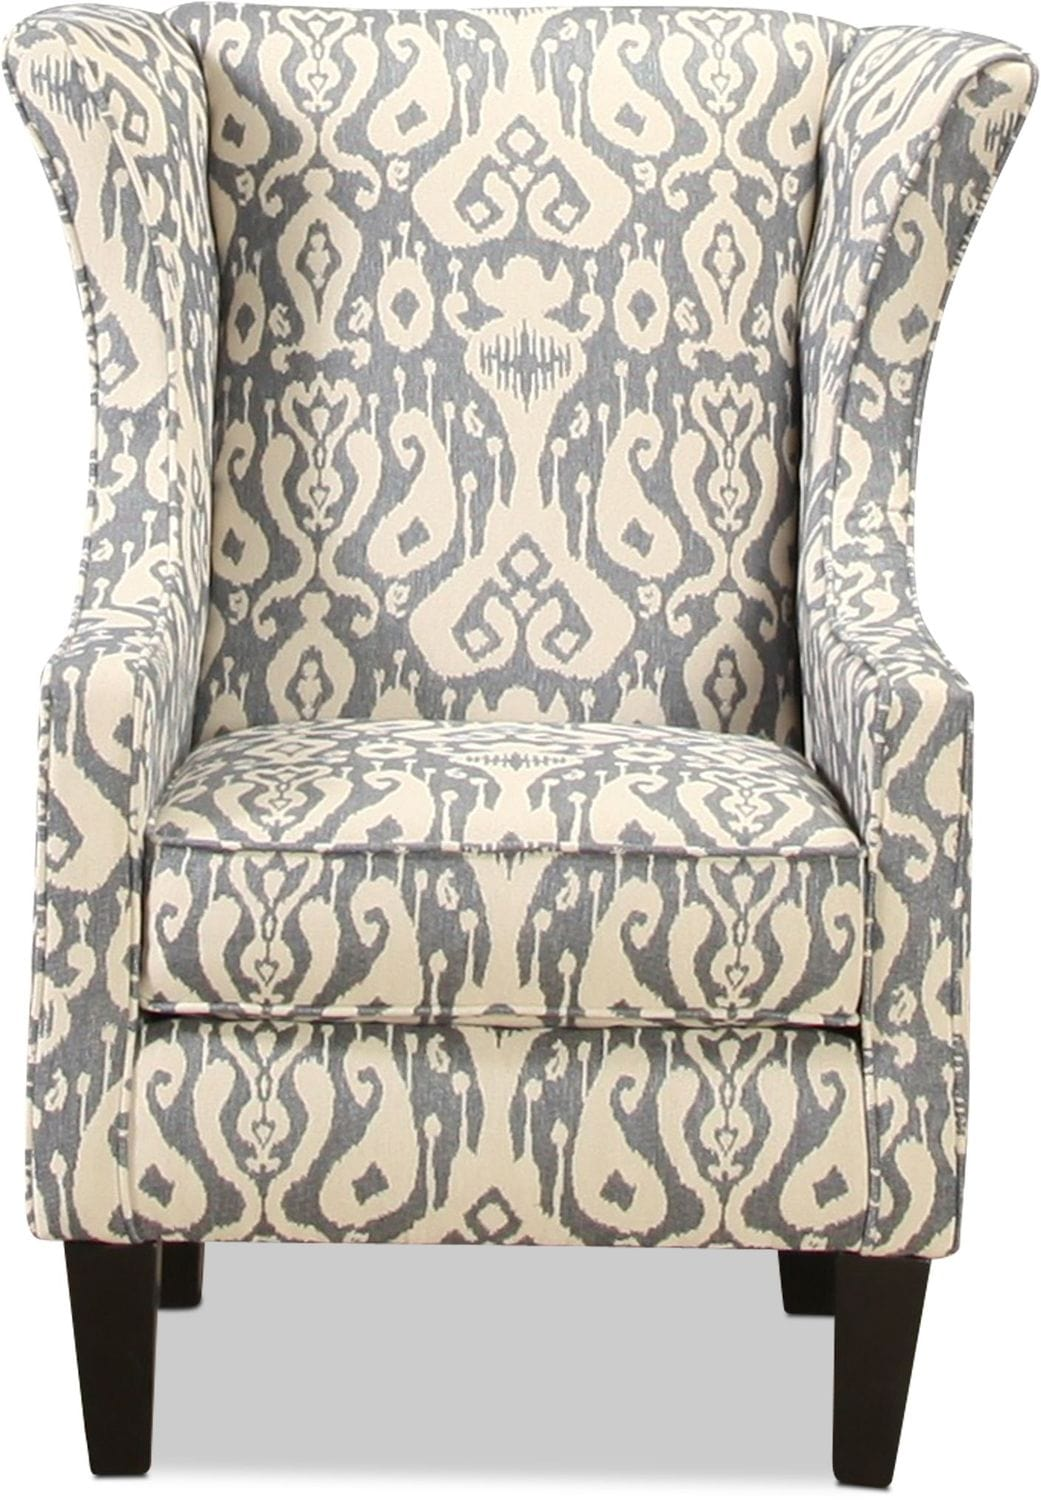 Greenvale Accent Chair - Ikat